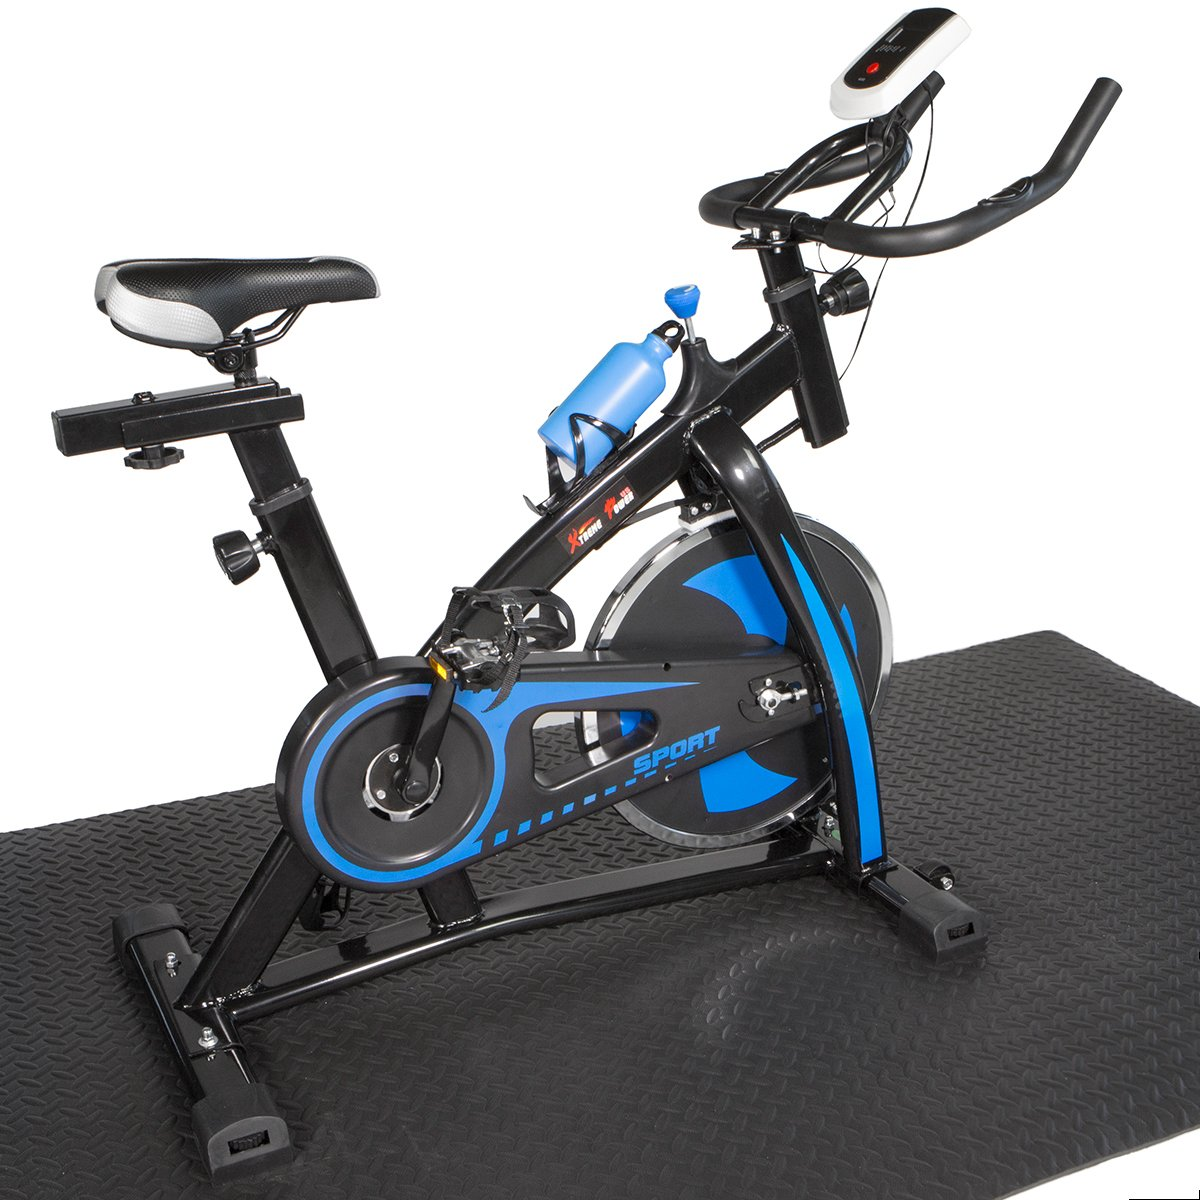 XtremepowerUS Indoor Cycle Trainer Fitness Bicycle Stationary w/Treadmill mat by XtremepowerUS (Image #1)